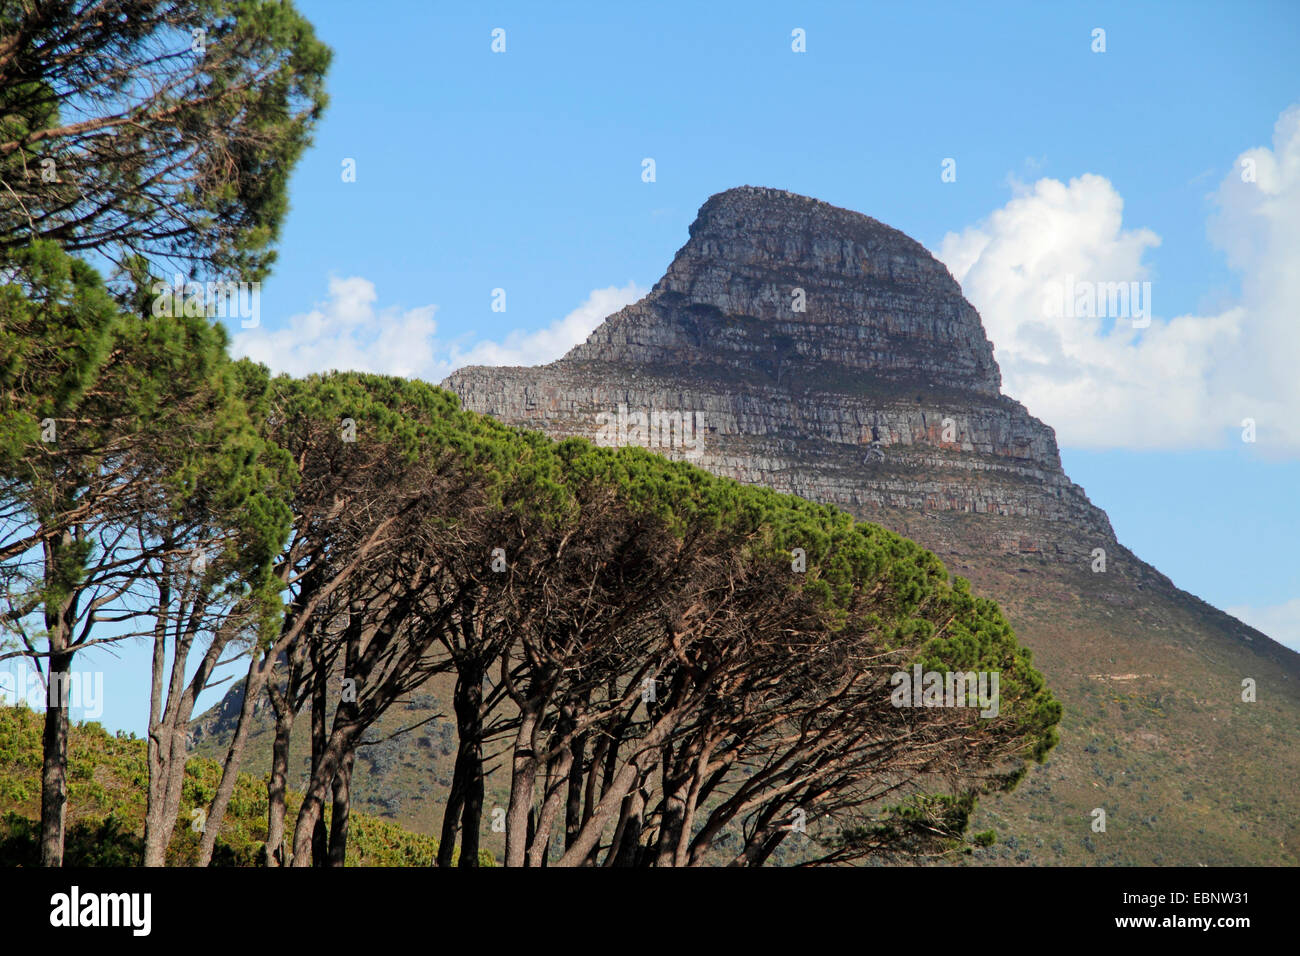 Lions Head mountain and pines in the foreground, South Africa, Table Mountain National Park, Capetown - Stock Image